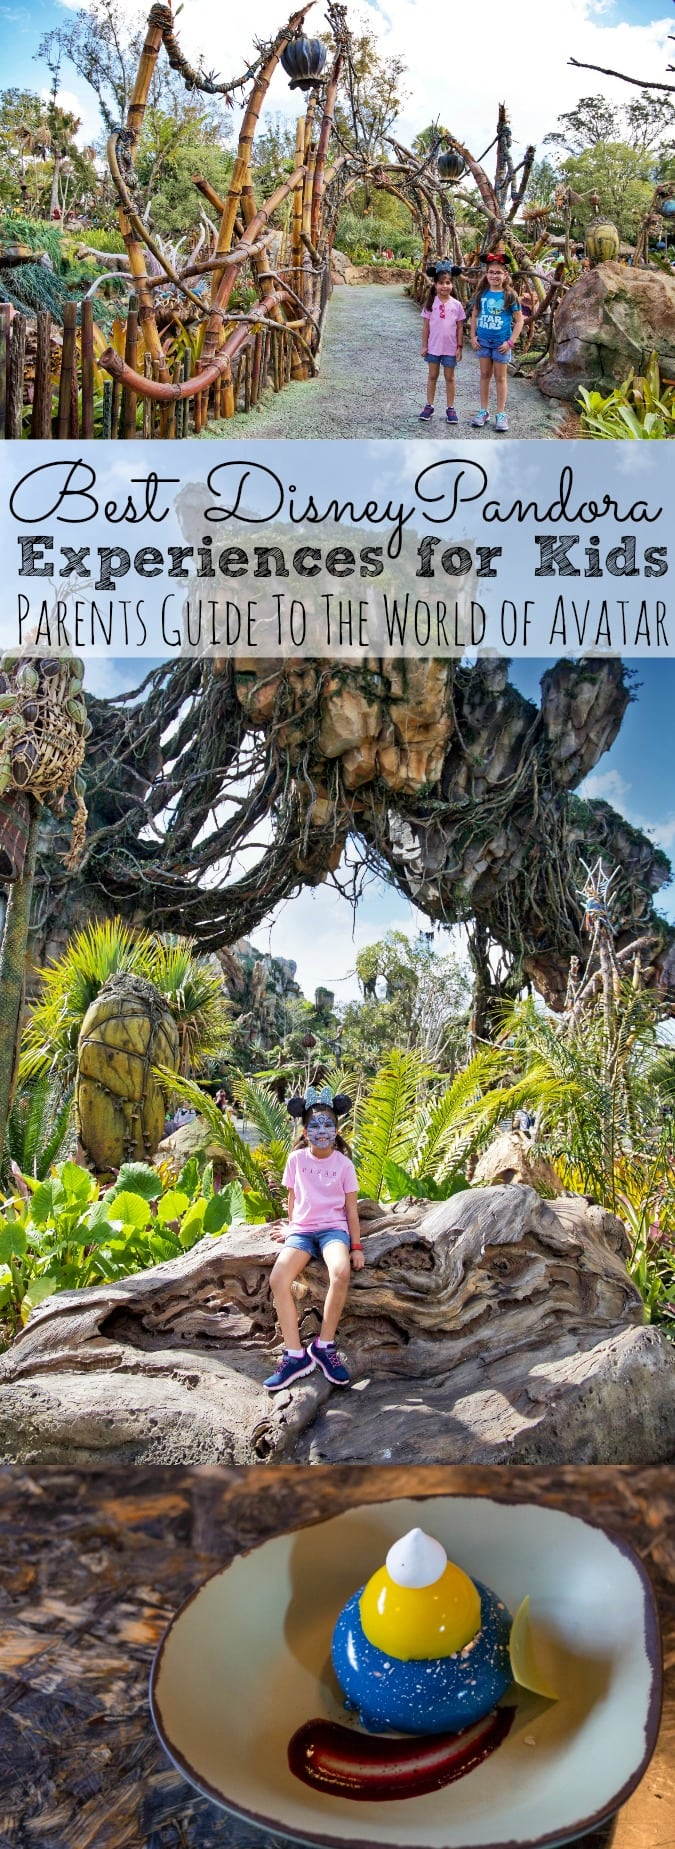 Are you planning a trip to Walt Disney World with kids? Check out the Best Disney Pandora Experiences For Kids   A Parents Guide To The World of Avatar at Animal Kingdom! From the food, the rides, the language, and so much more! My girls narrow down their top things to do at Pandora World of Avatar at Disney. - simplytodaylife.com